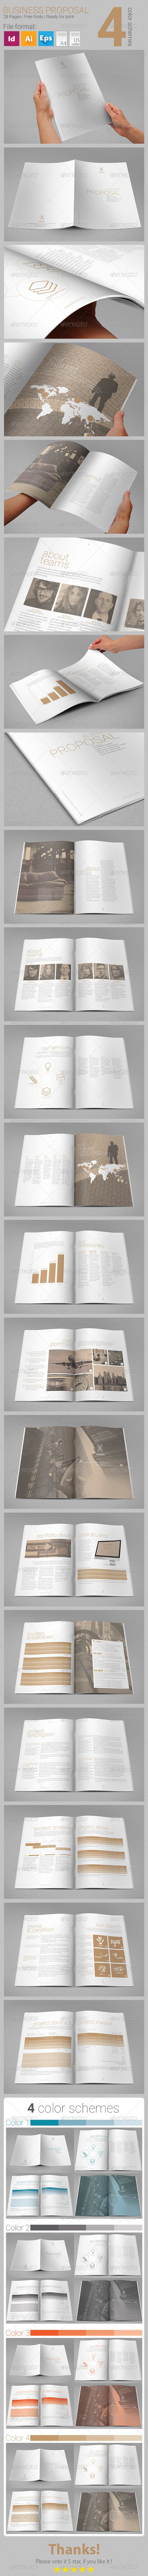 Business Proposal Template | Download: http://graphicriver.net/item/proposal_ximxon/8746570?ref=ksioks